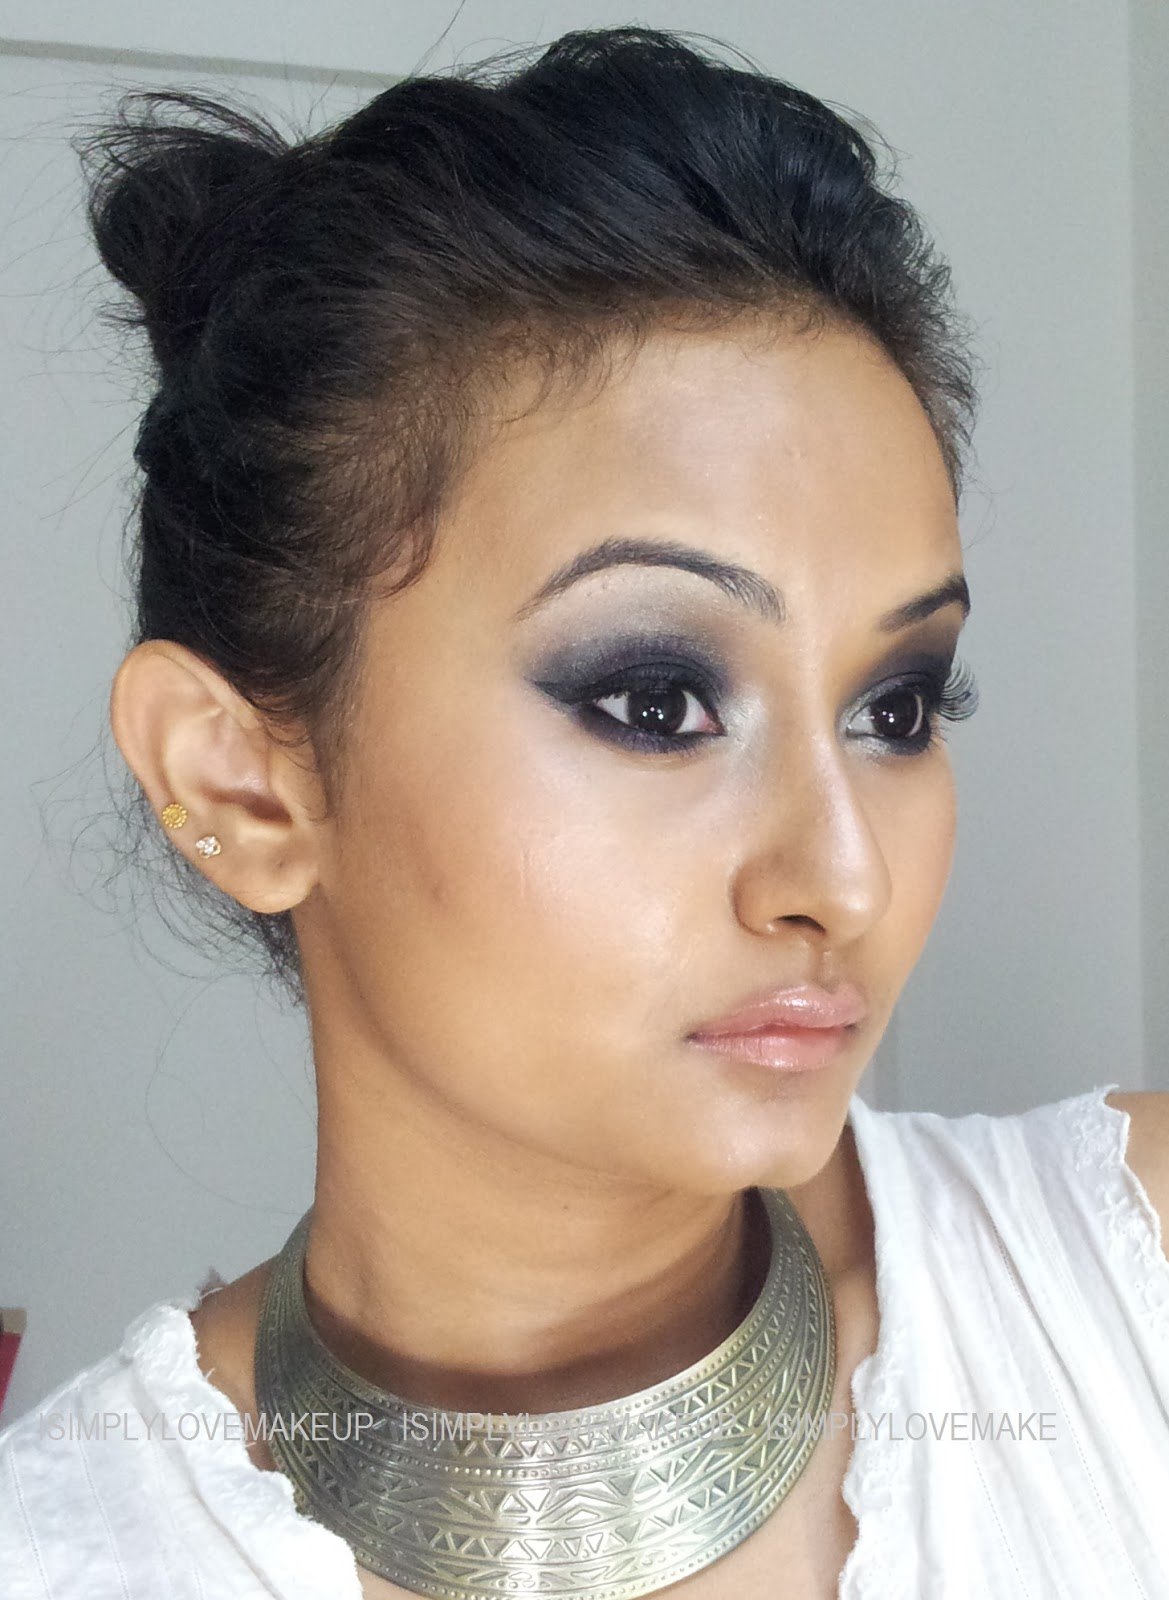 90's Grunge Inspired Black SMokey Eyes